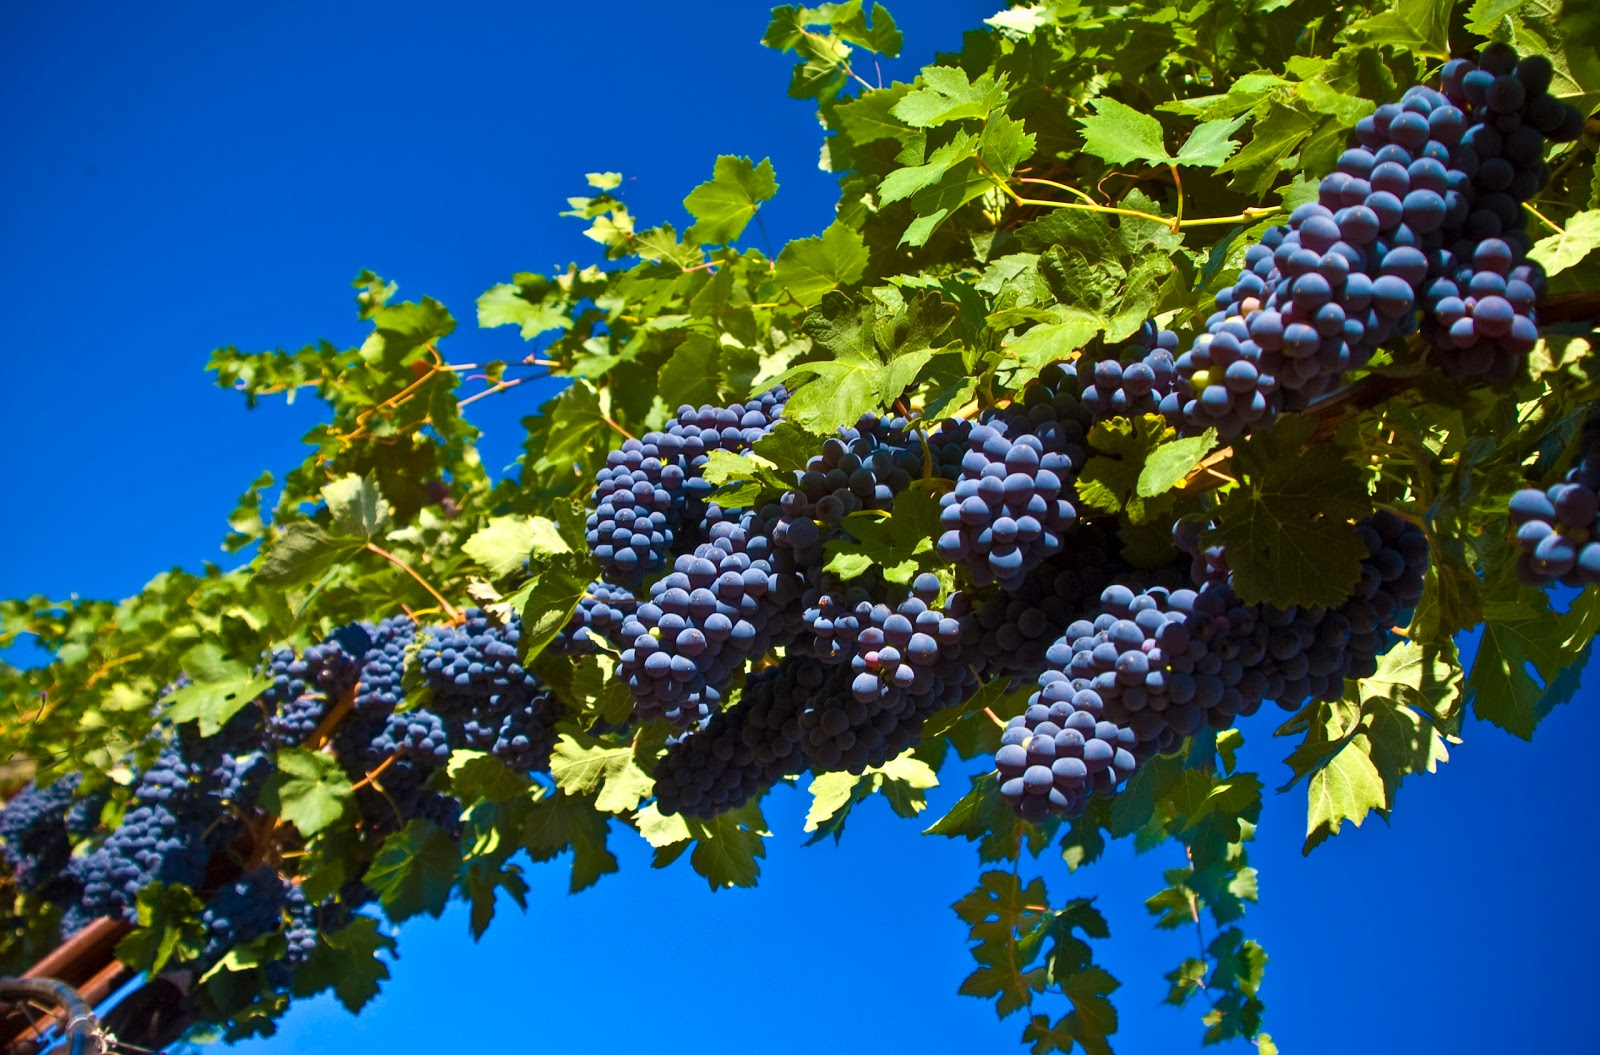 http://2.bp.blogspot.com/_2UbsSBz9ckE/TJAbsMnBkHI/AAAAAAAABWc/hvn5wkJ8xkE/s1600/grapes_Harvest_HD_background_Desktop.jpg